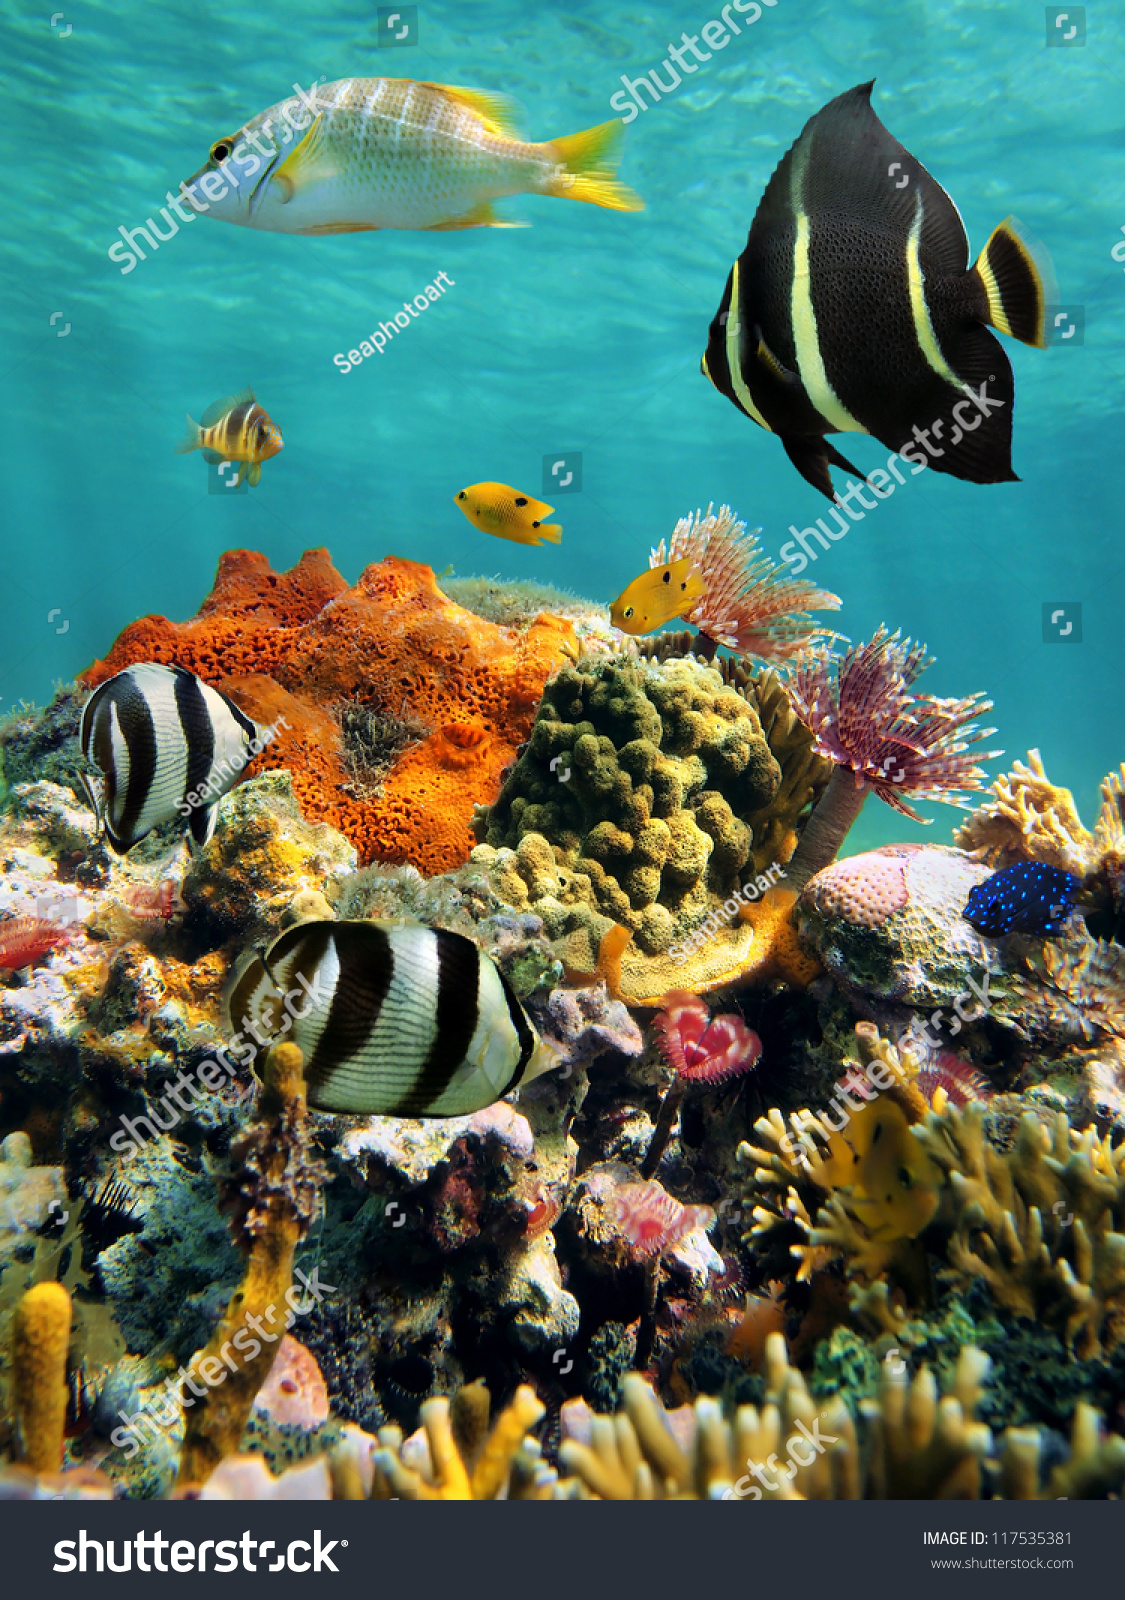 Colorful Underwater Marine Life In A Coral Reef With Water